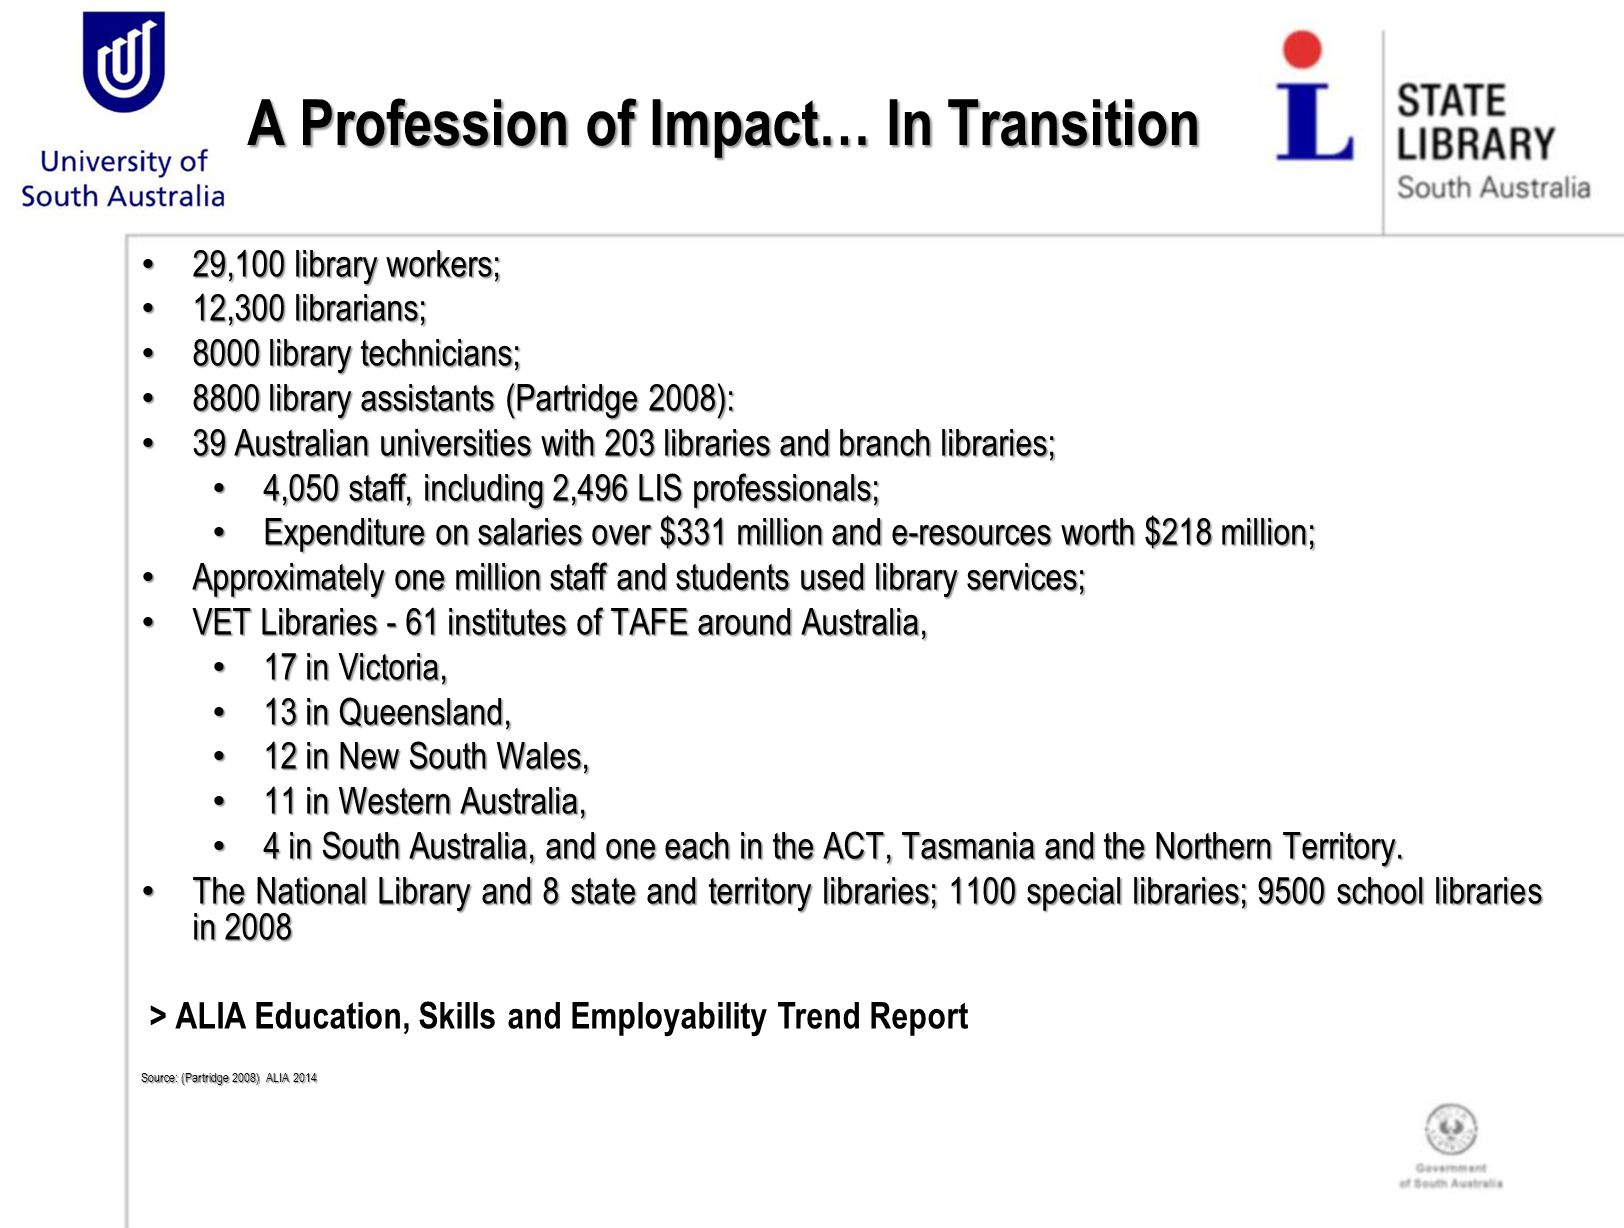 A Profession of Impact… In Transition 29,100 library workers; 29,100 library workers; 12,300 librarians; 12,300 librarians; 8000 library technicians; 8000 library technicians; 8800 library assistants (Partridge 2008): 8800 library assistants (Partridge 2008): 39 Australian universities with 203 libraries and branch libraries; 39 Australian universities with 203 libraries and branch libraries; 4,050 staff, including 2,496 LIS professionals; 4,050 staff, including 2,496 LIS professionals; Expenditure on salaries over $331 million and e-resources worth $218 million; Expenditure on salaries over $331 million and e-resources worth $218 million; Approximately one million staff and students used library services; Approximately one million staff and students used library services; VET Libraries - 61 institutes of TAFE around Australia, VET Libraries - 61 institutes of TAFE around Australia, 17 in Victoria, 17 in Victoria, 13 in Queensland, 13 in Queensland, 12 in New South Wales, 12 in New South Wales, 11 in Western Australia, 11 in Western Australia, 4 in South Australia, and one each in the ACT, Tasmania and the Northern Territory.